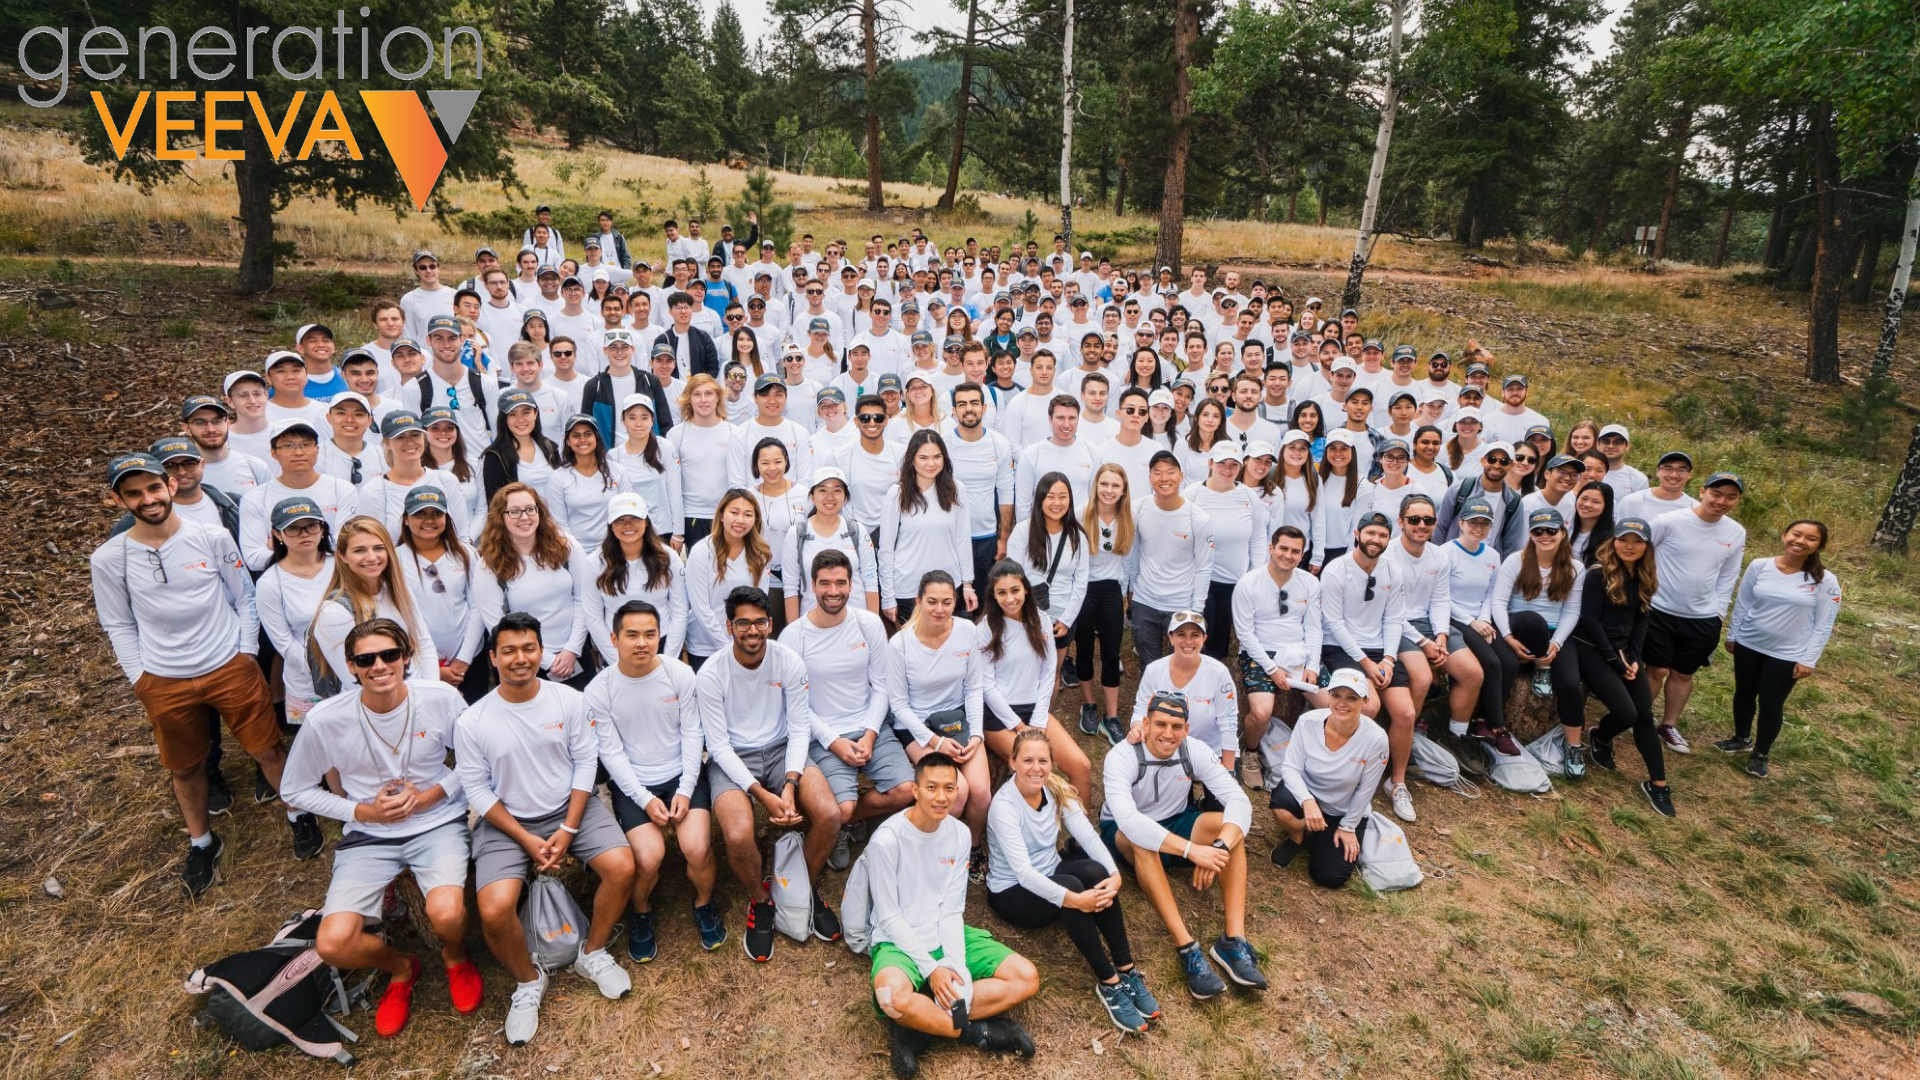 Group shot of Veeva co-op students and employees at a retreat